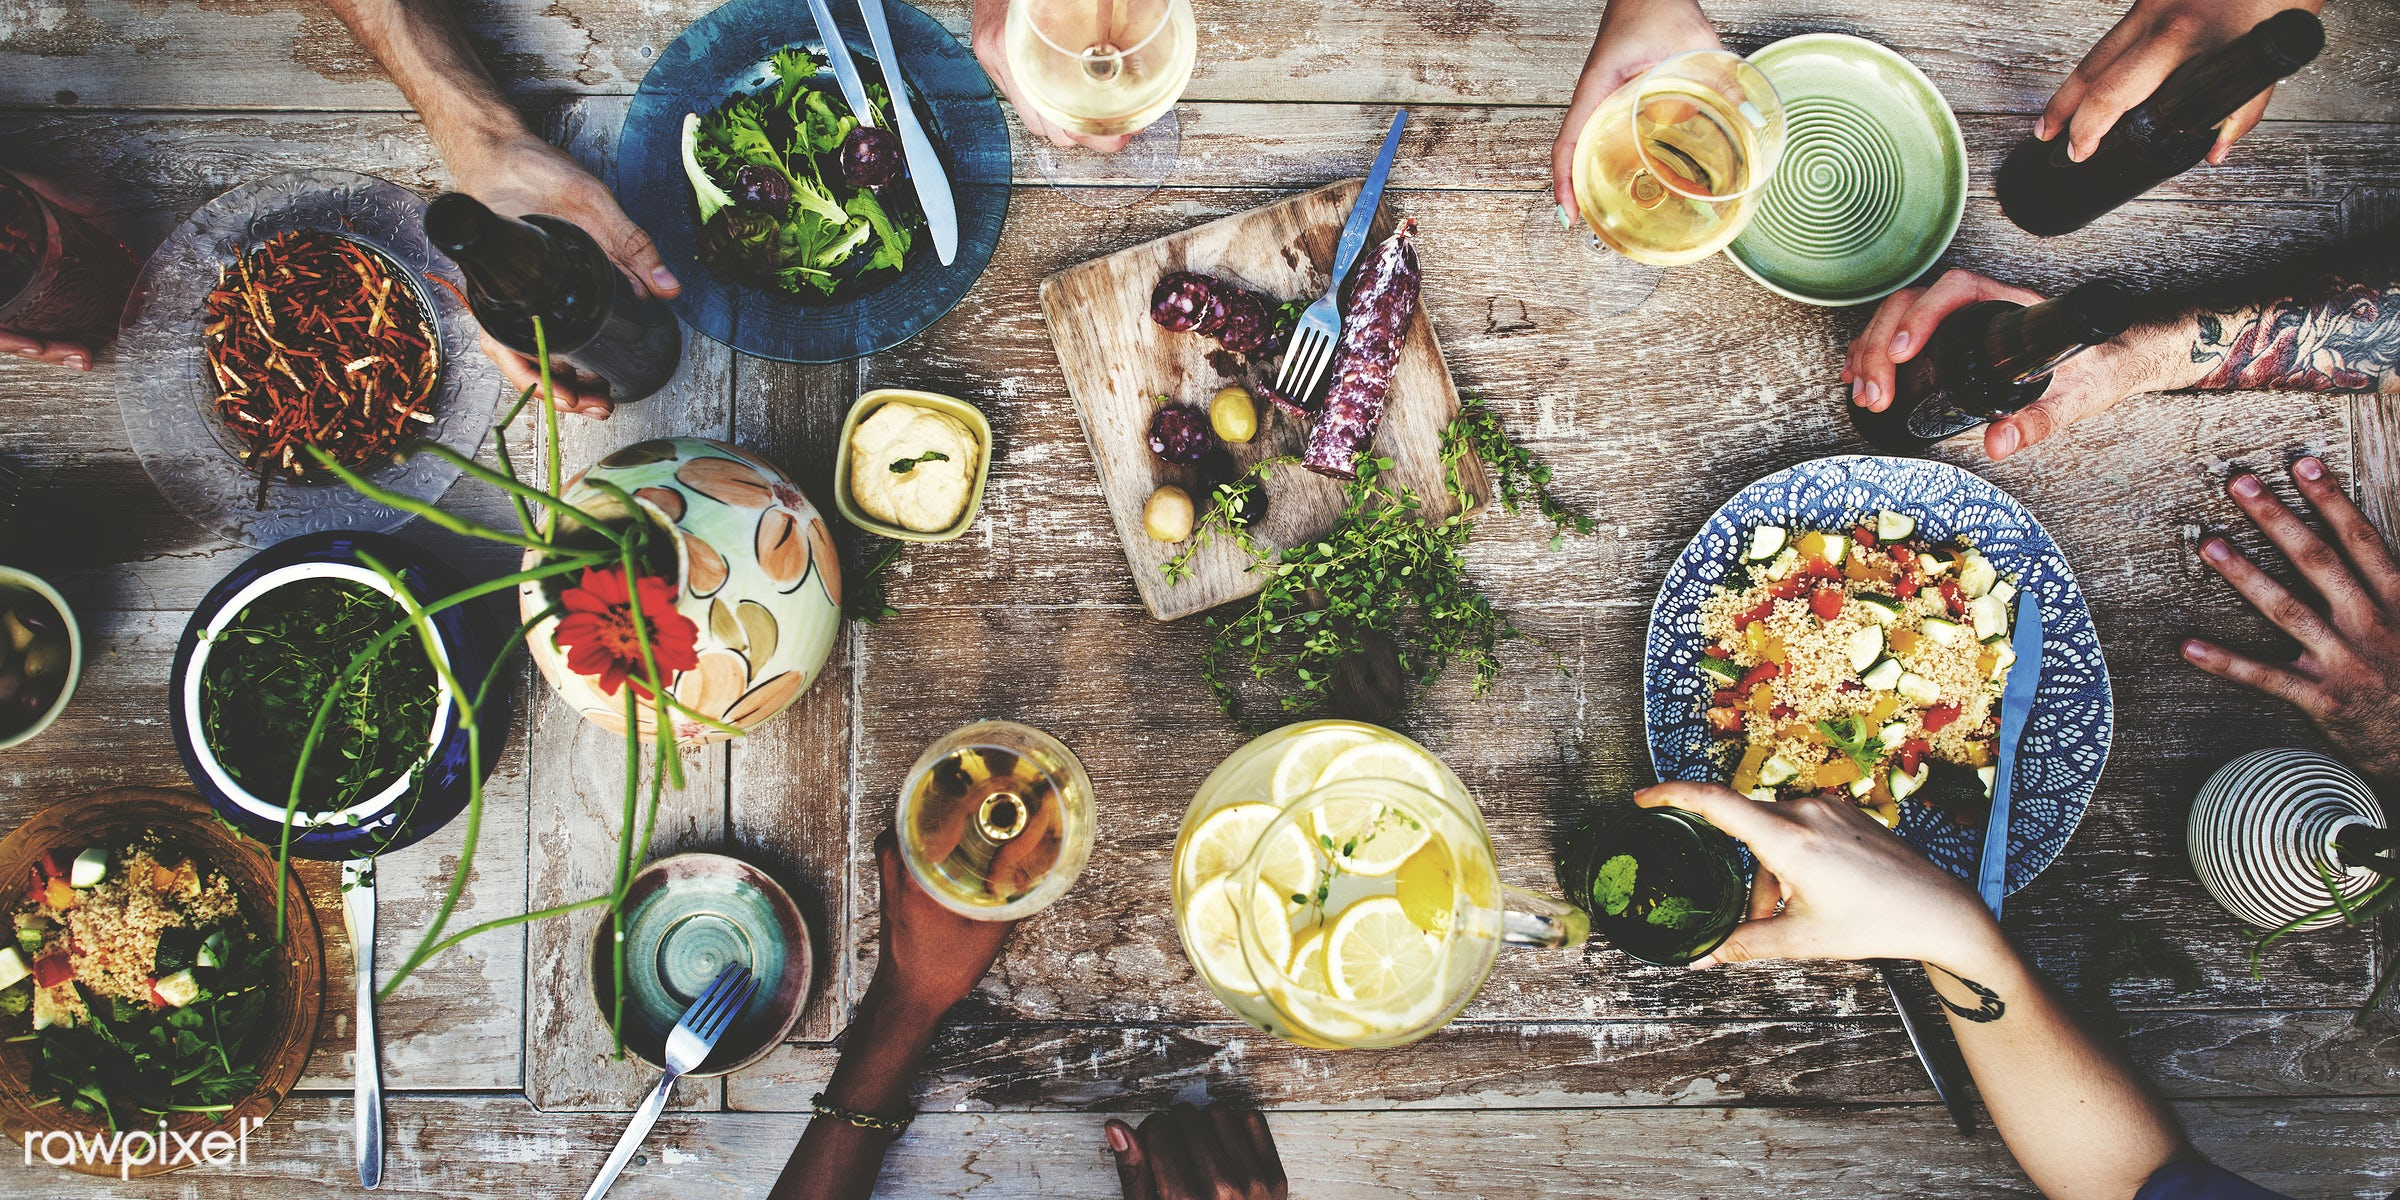 Summer party with food and drinks - kitchen, beer, spice, wine, aerial view, allspice, beverage, bowl, champagne, color,...